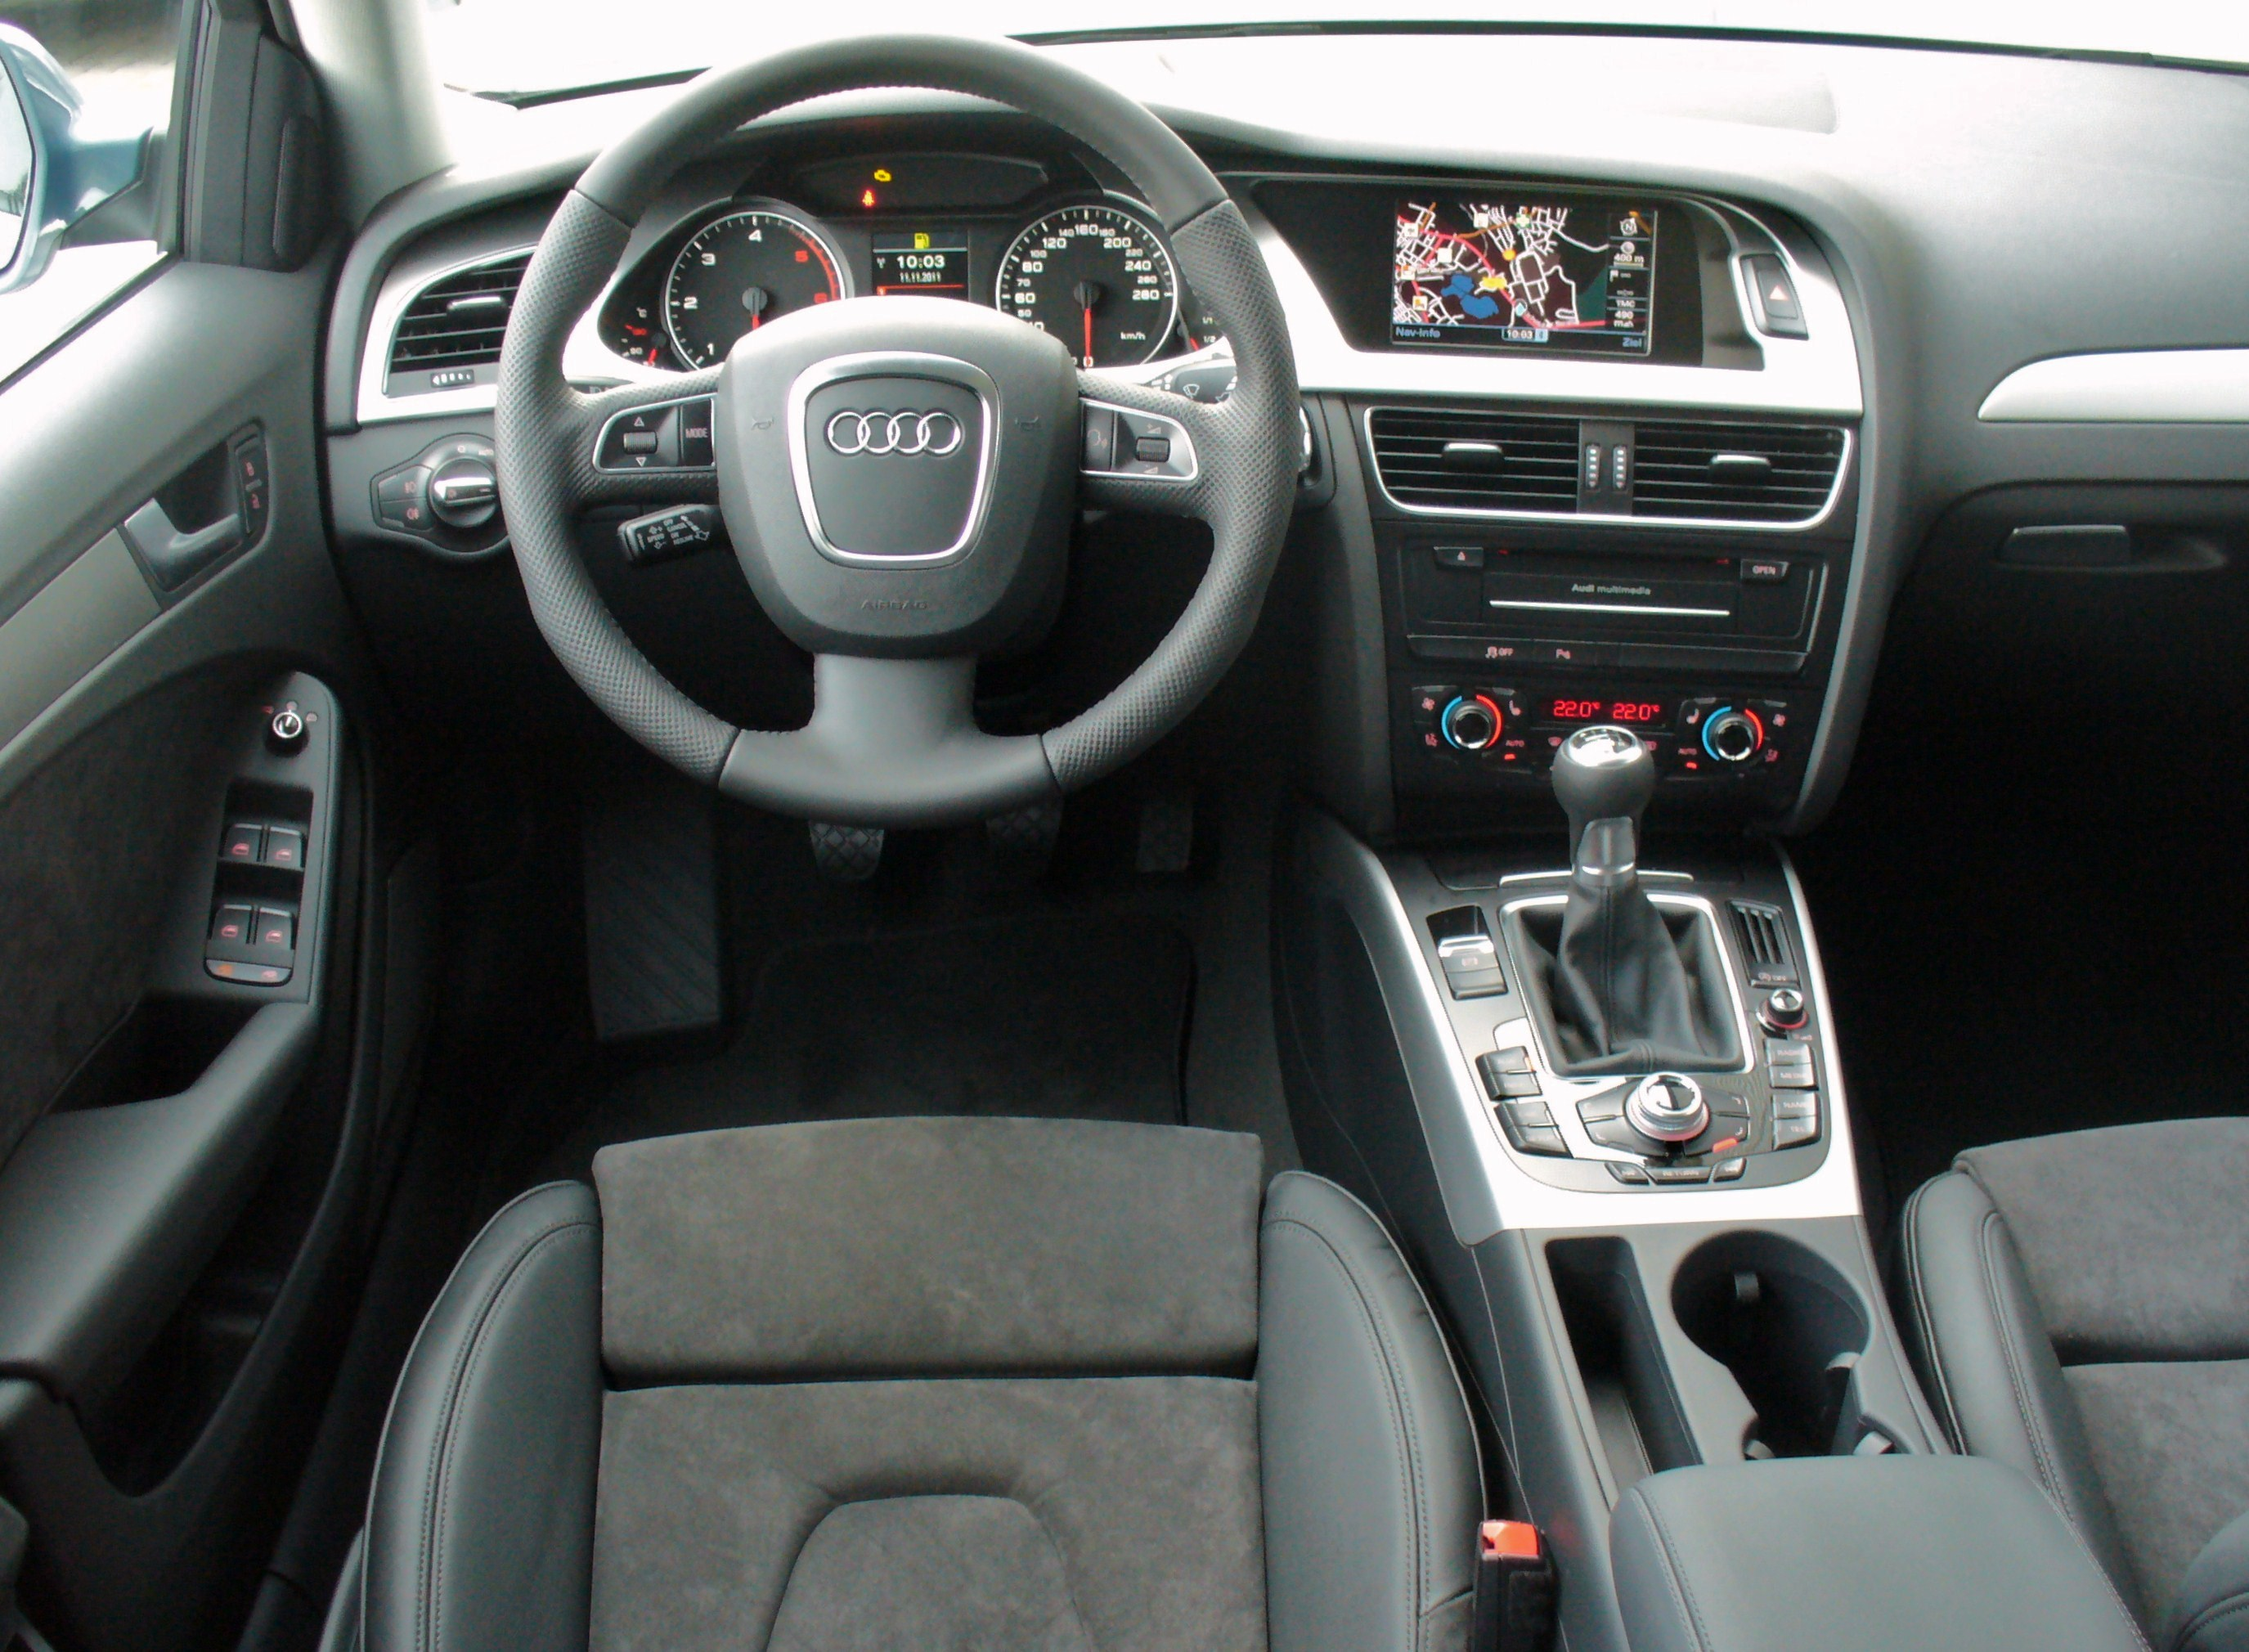 datei audi a4 avant ambiente 2 0 tdi quattro sph renblau interieur jpg wikipedia. Black Bedroom Furniture Sets. Home Design Ideas